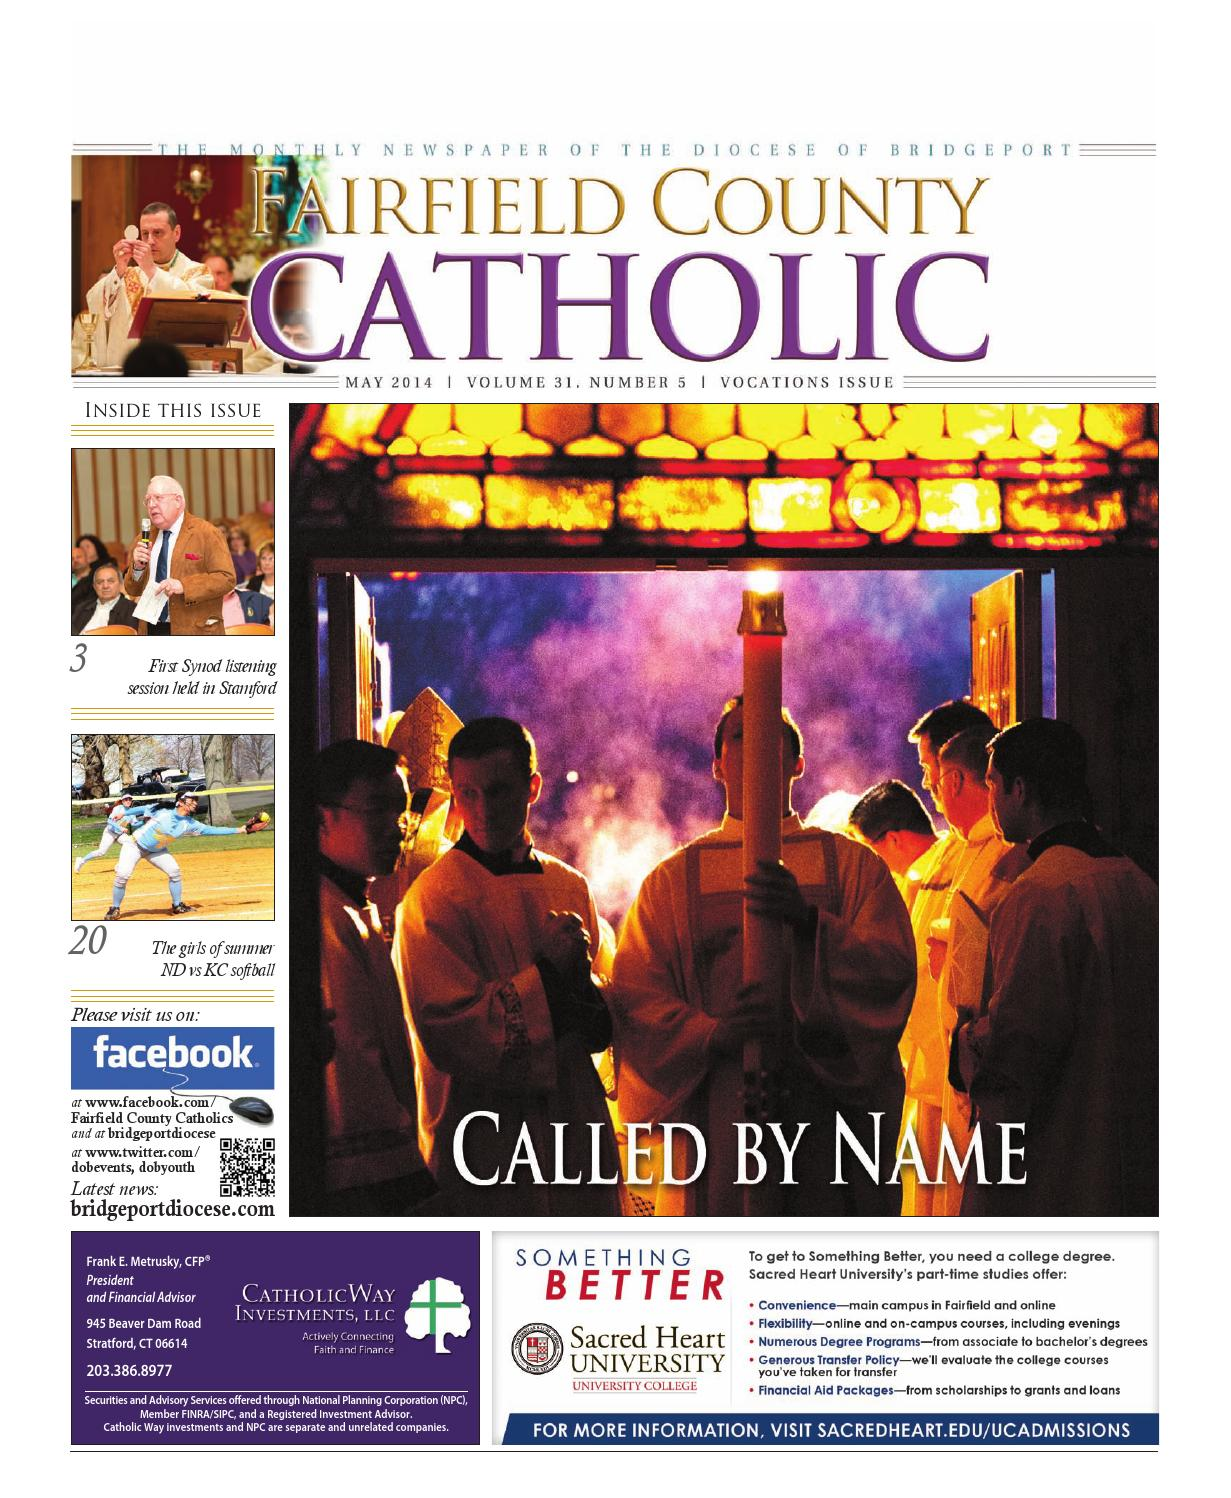 catholic singles in fairfield county Explore 2019 school ratings and statistics for catholic schools in fairfield county compare the best catholic schools near you.